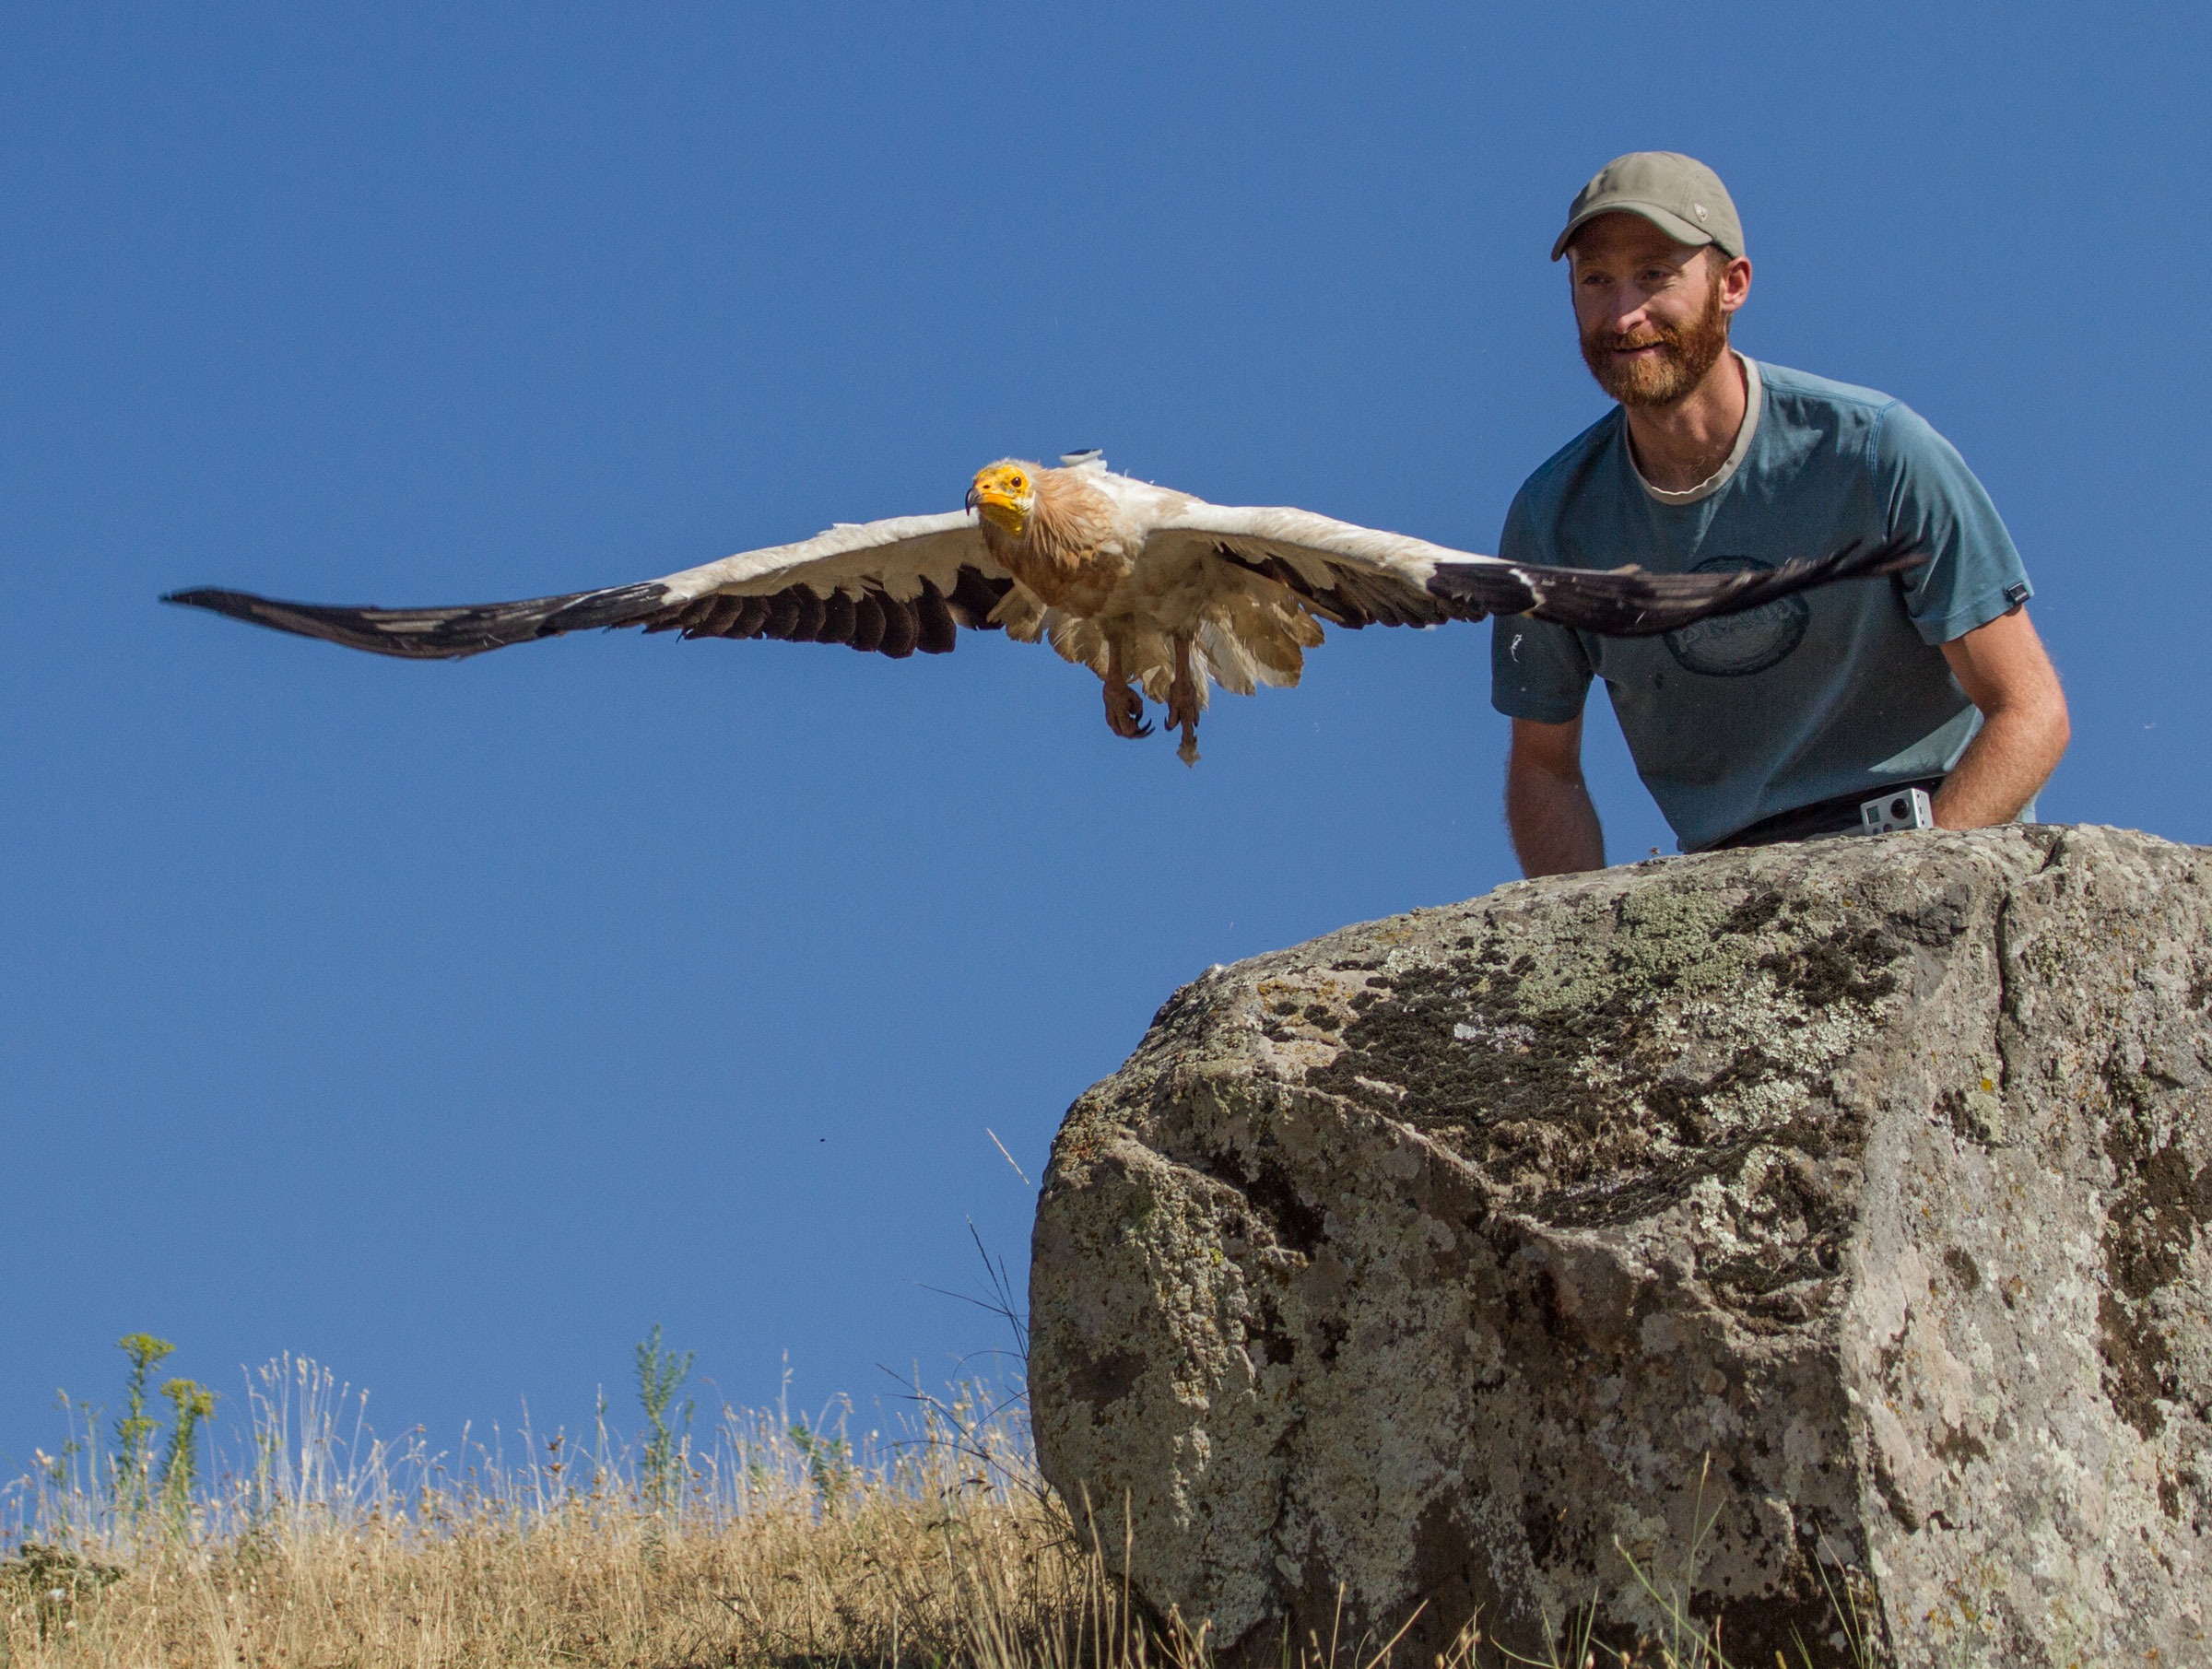 Buechley releases an adult Egyptian Vulture in Armenia after attaching a tracker on its back. These devices help scientists investigate where this endangered species is breeding, feeding, and migrating. Anush Khachatrian